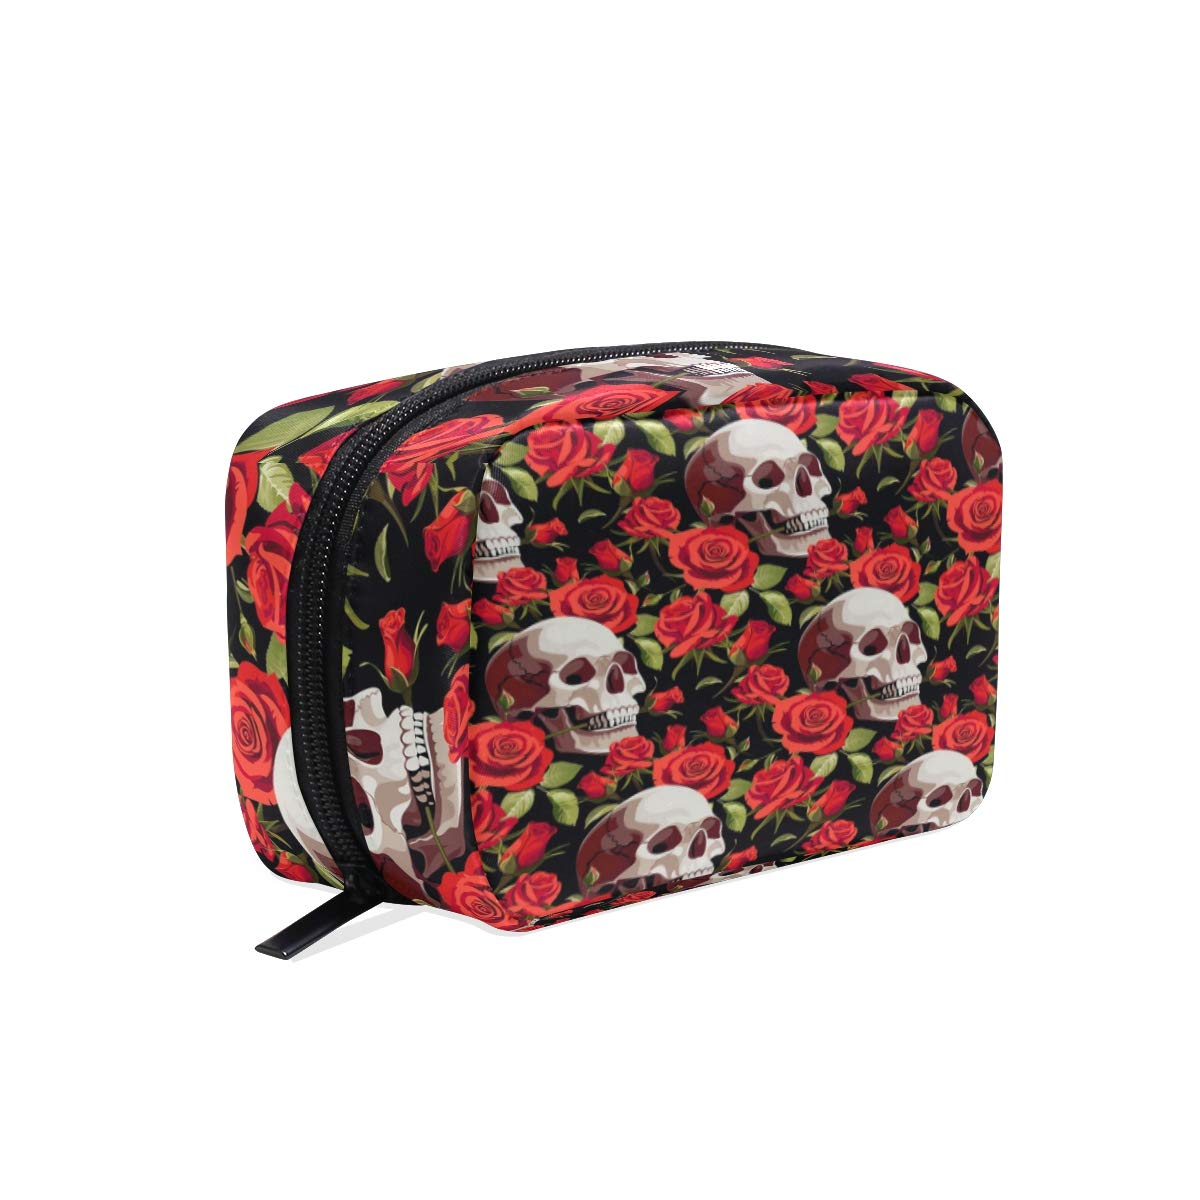 Makeup Bag Portable Travel Cosmetic Skull Rose Train Case Toiletry Bag Organizer Accessories Case Tools Case for Beauty Women